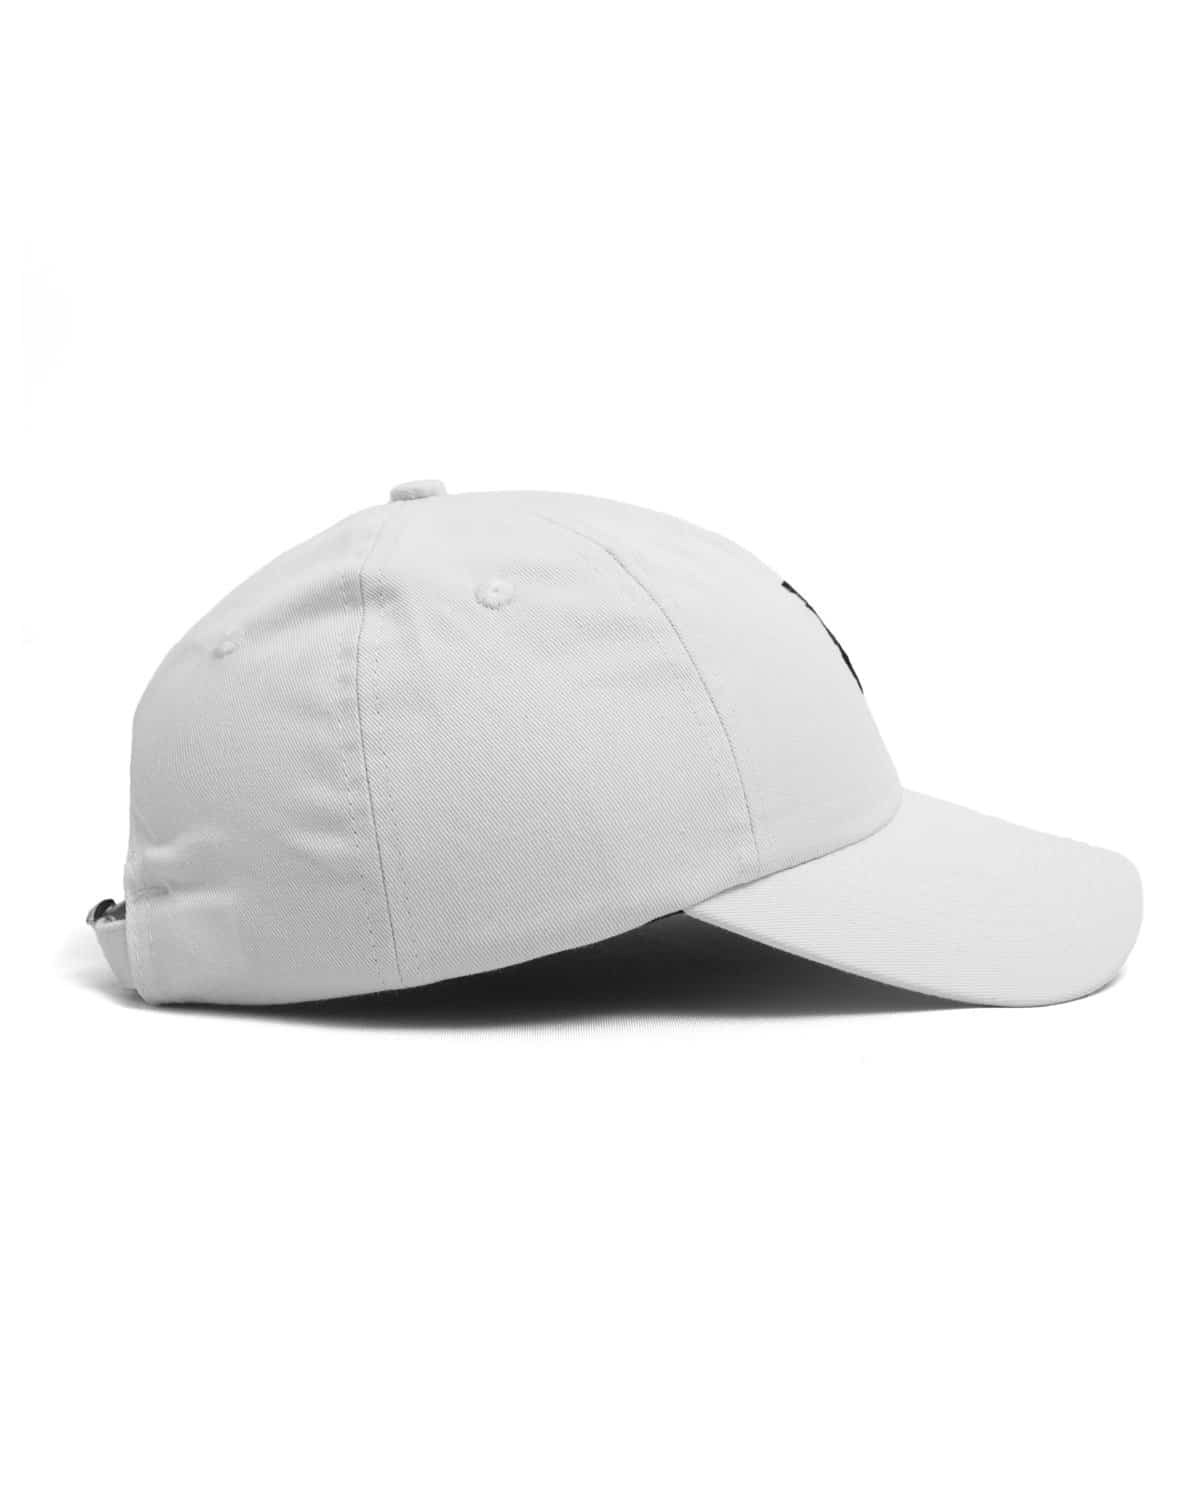 Excision 'Sliced' Logo Dad Hat - White/Black